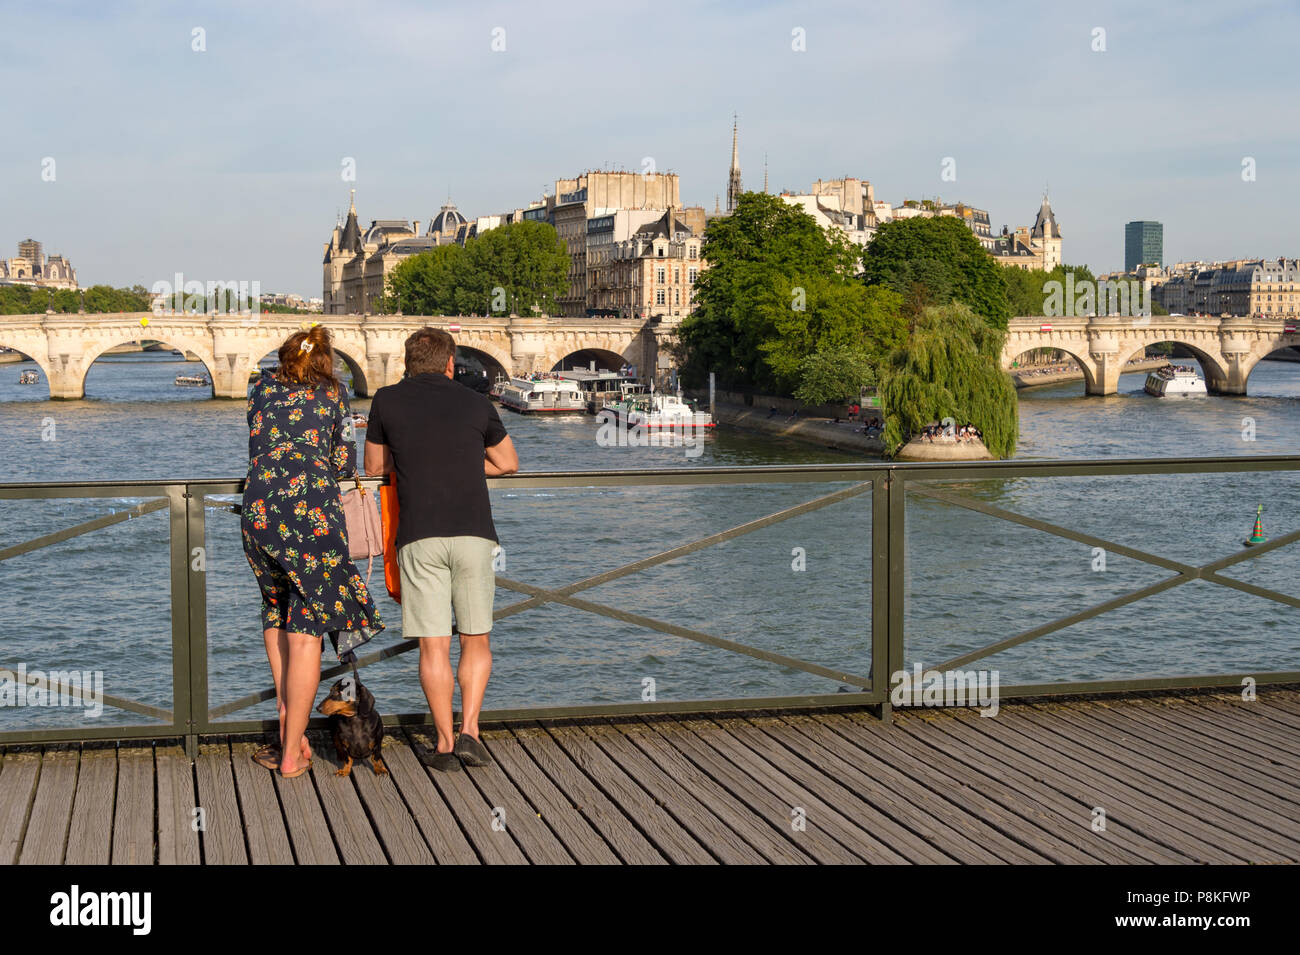 Paris, 24 June 2018: Tourists enjoying the view from Pont des Arts bridge. Stock Photo